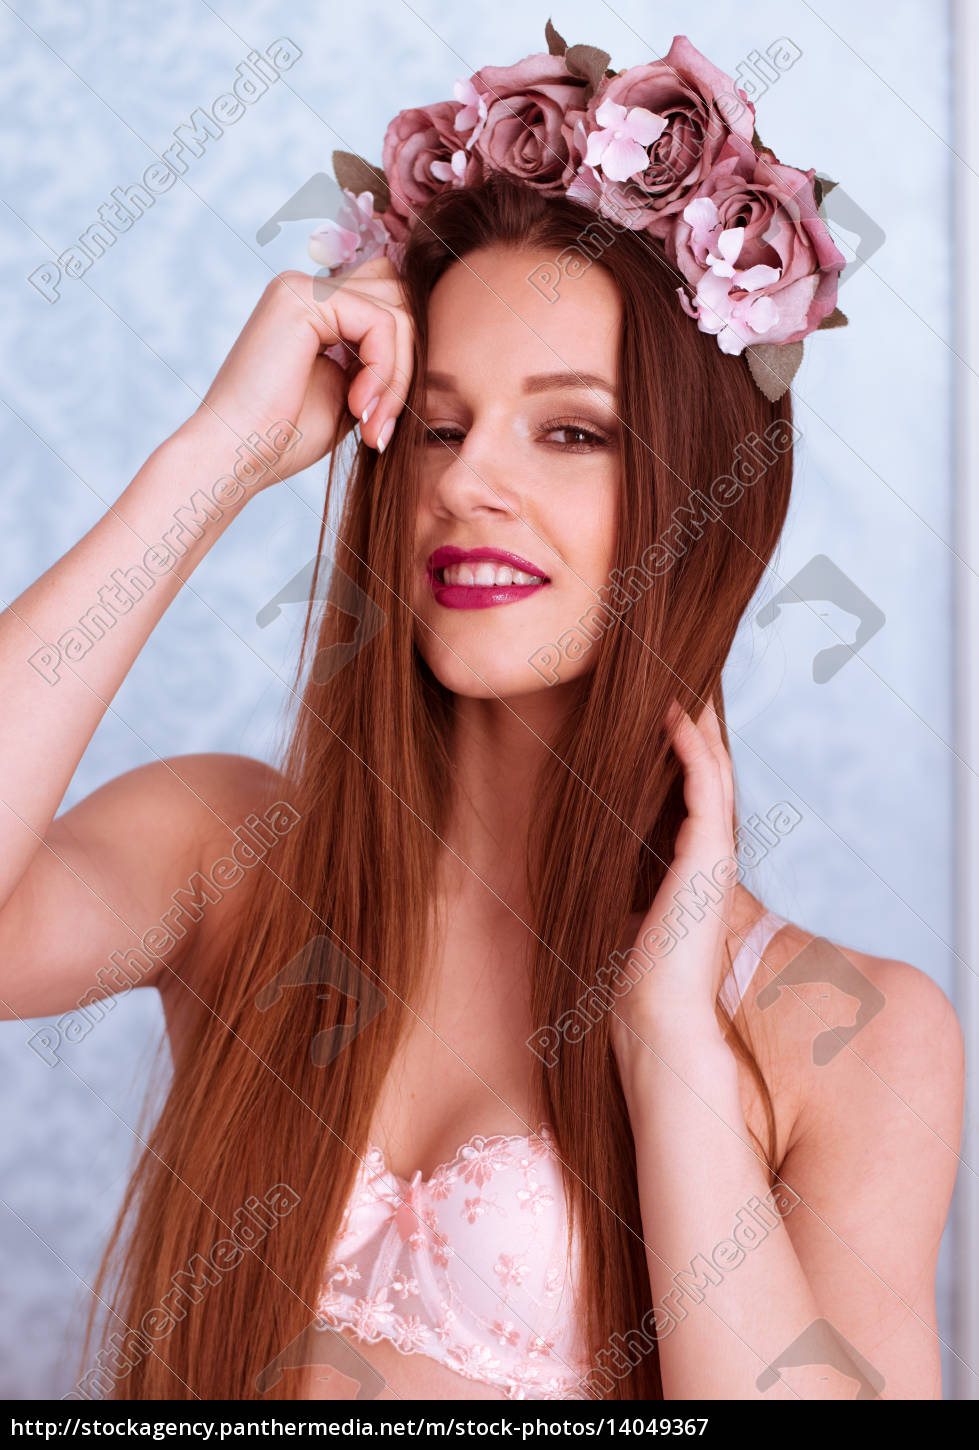 pretty, woman, in, bra, with, rose - 14049367